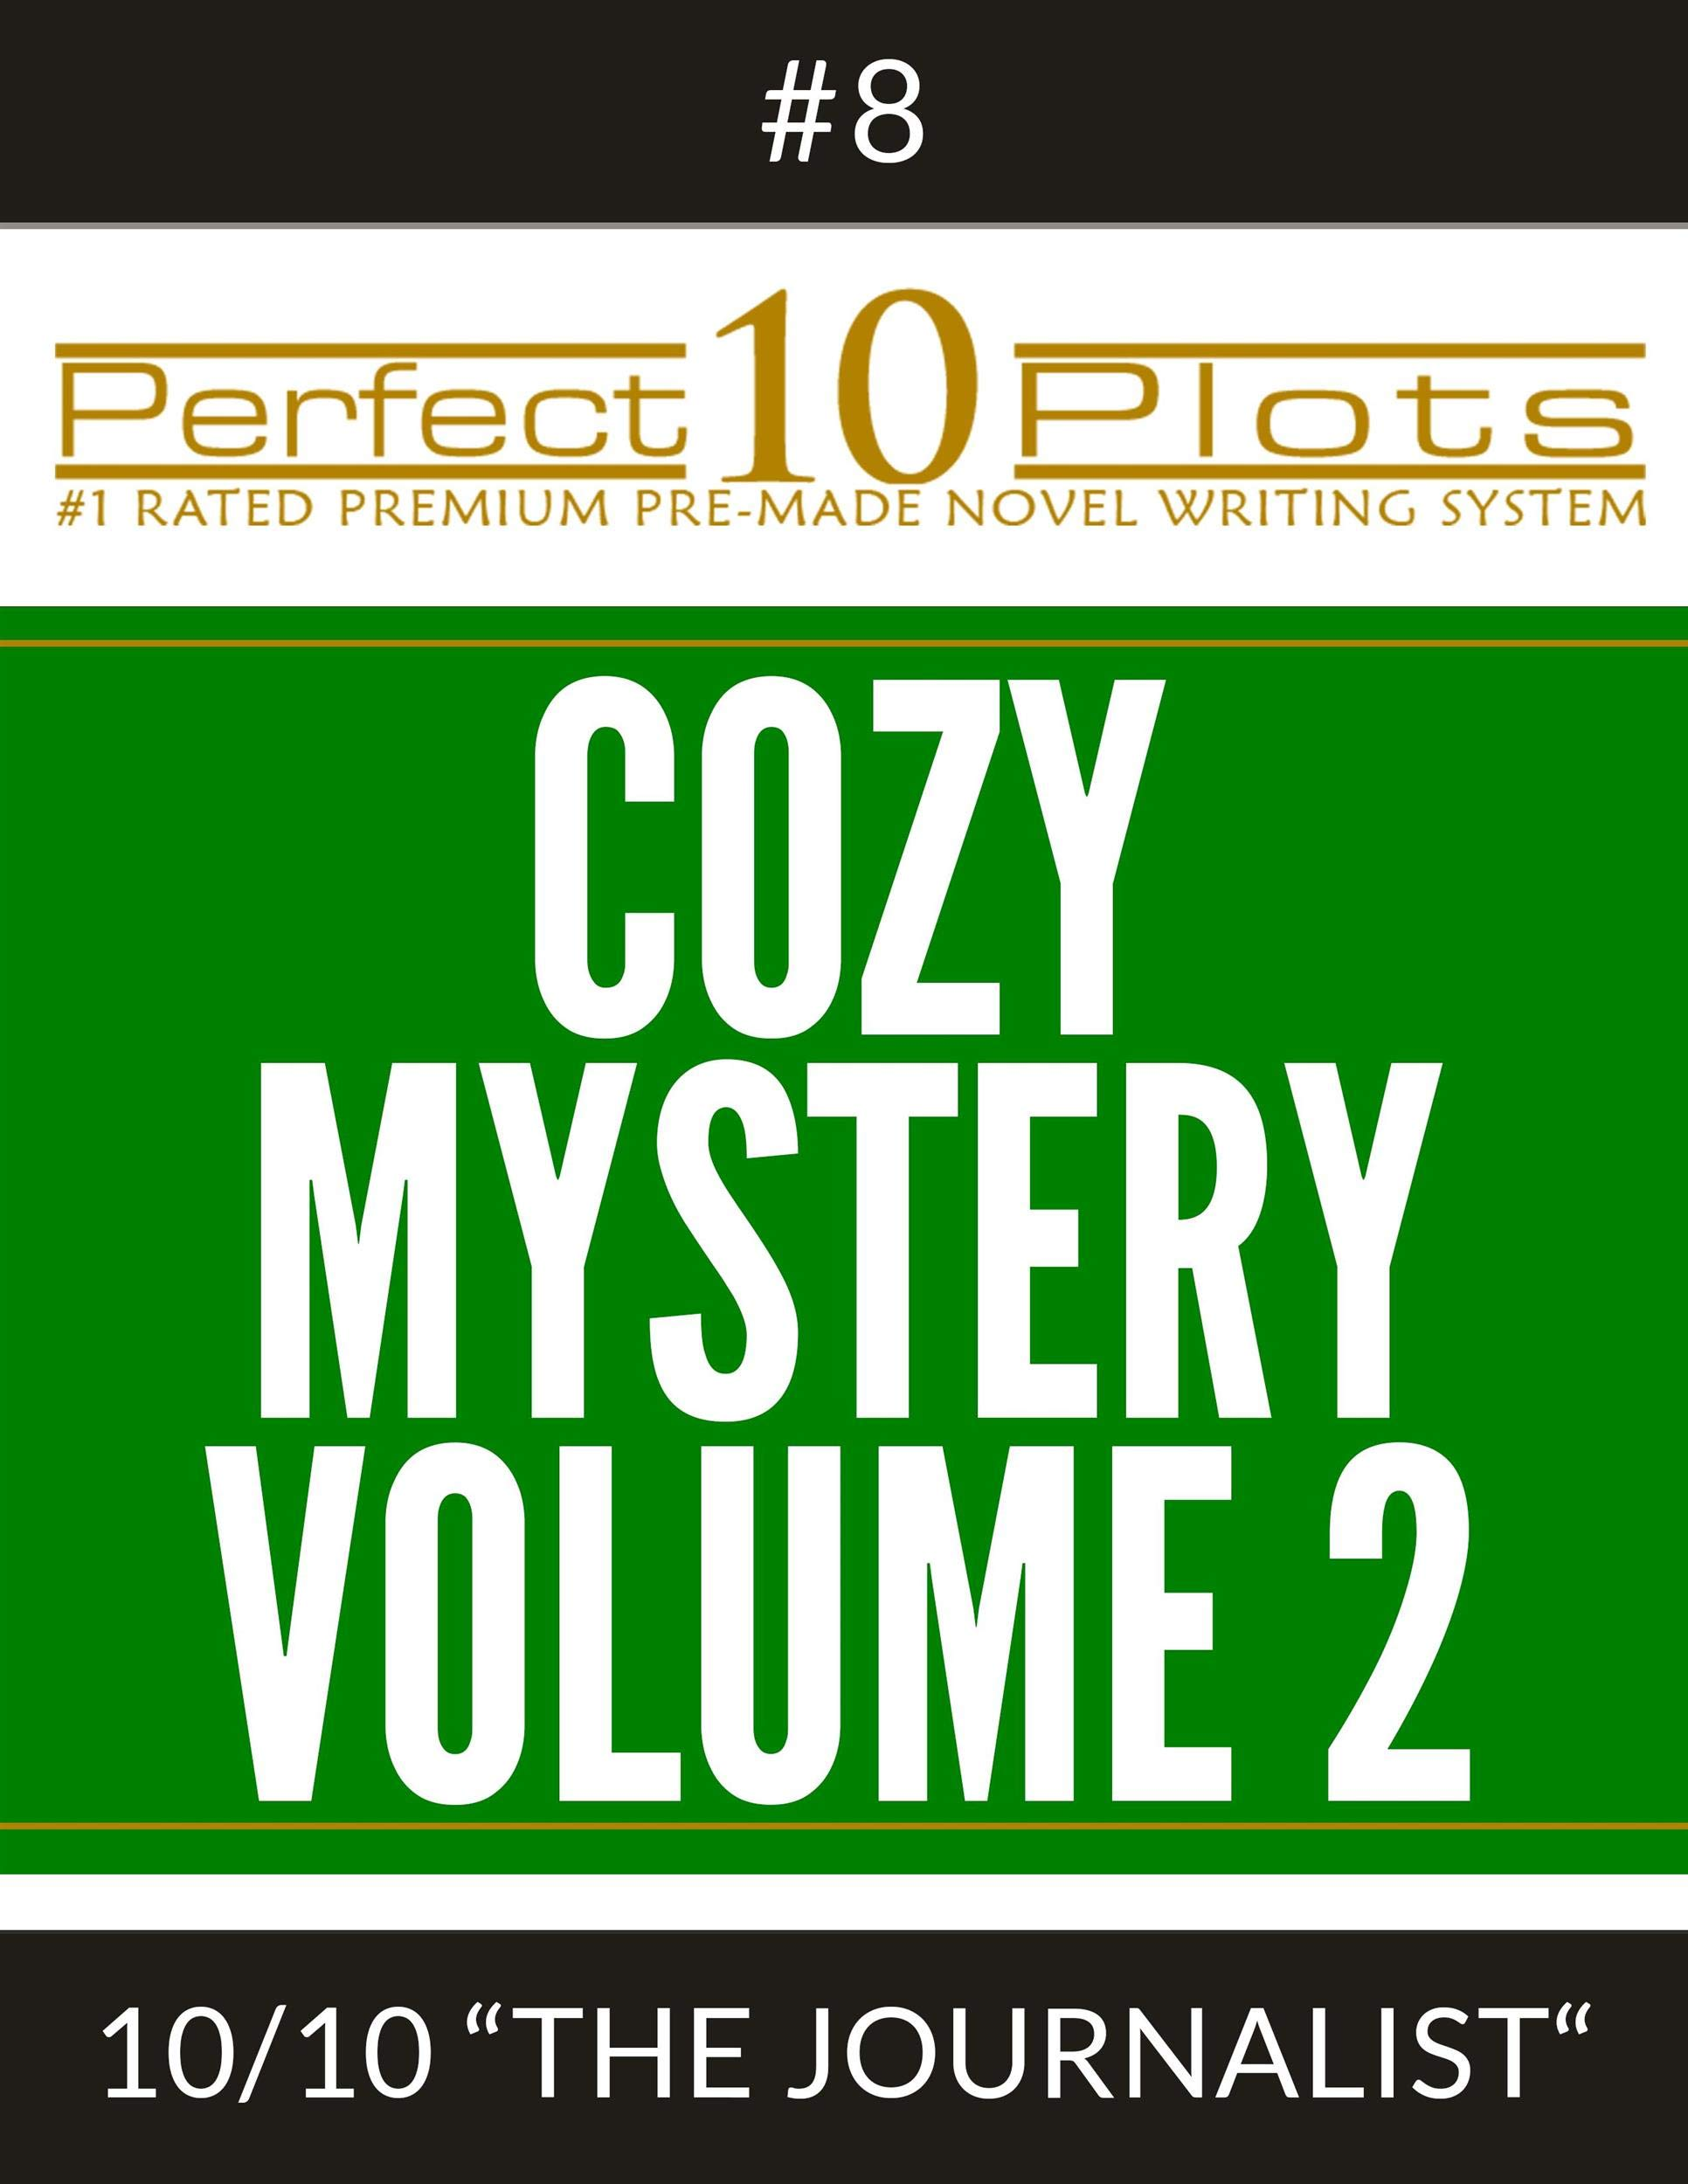 """Perfect 10 Cozy Mystery Volume 2 Plots #8-10 """"THE JOURNALIST"""": Premium Pre-Made Fiction Writing Template System (Perfect 10 Plots)"""